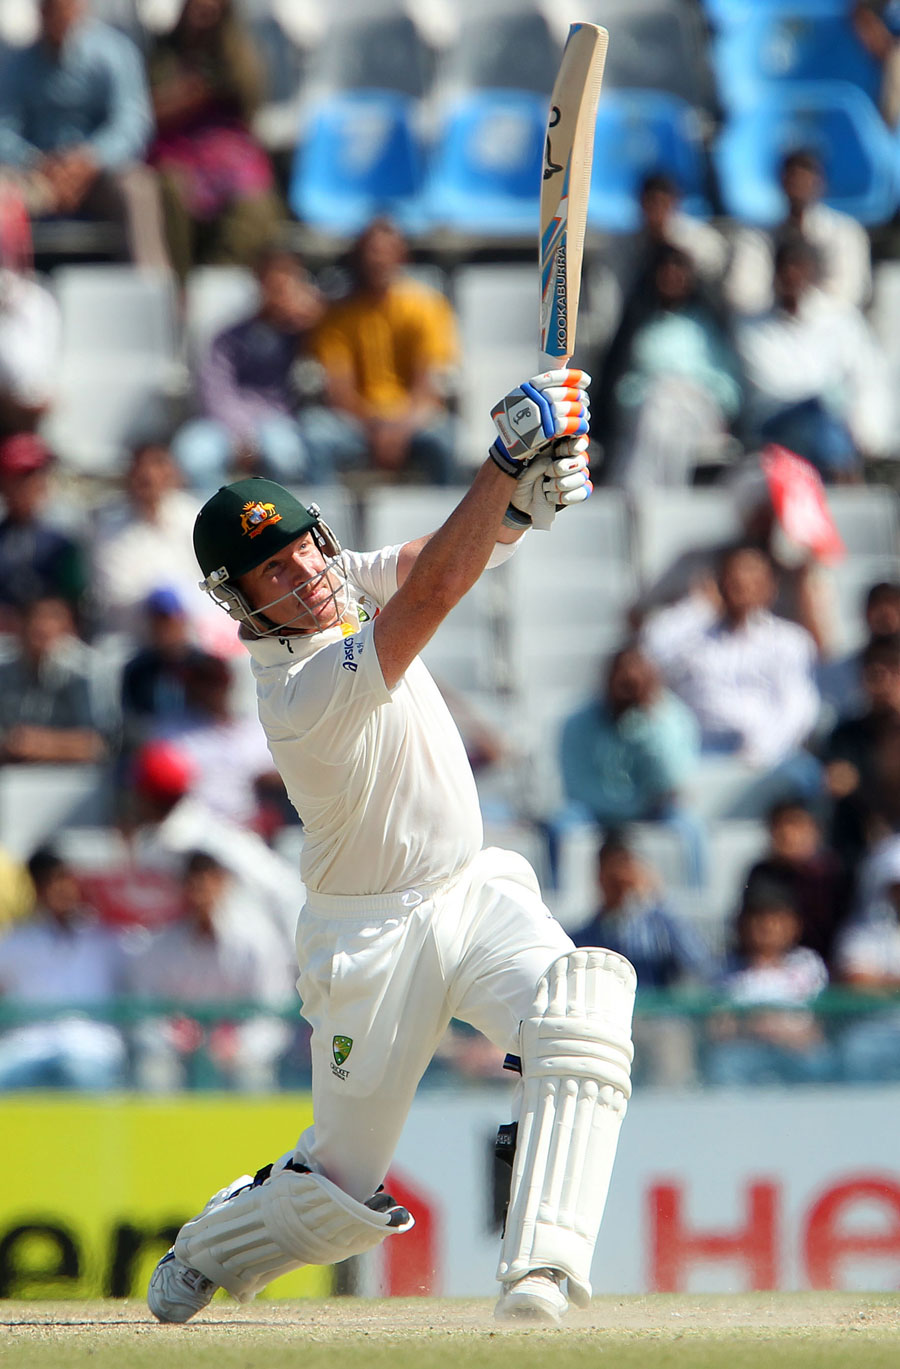 Brad Haddin plays an expansive shot during his innings of 30